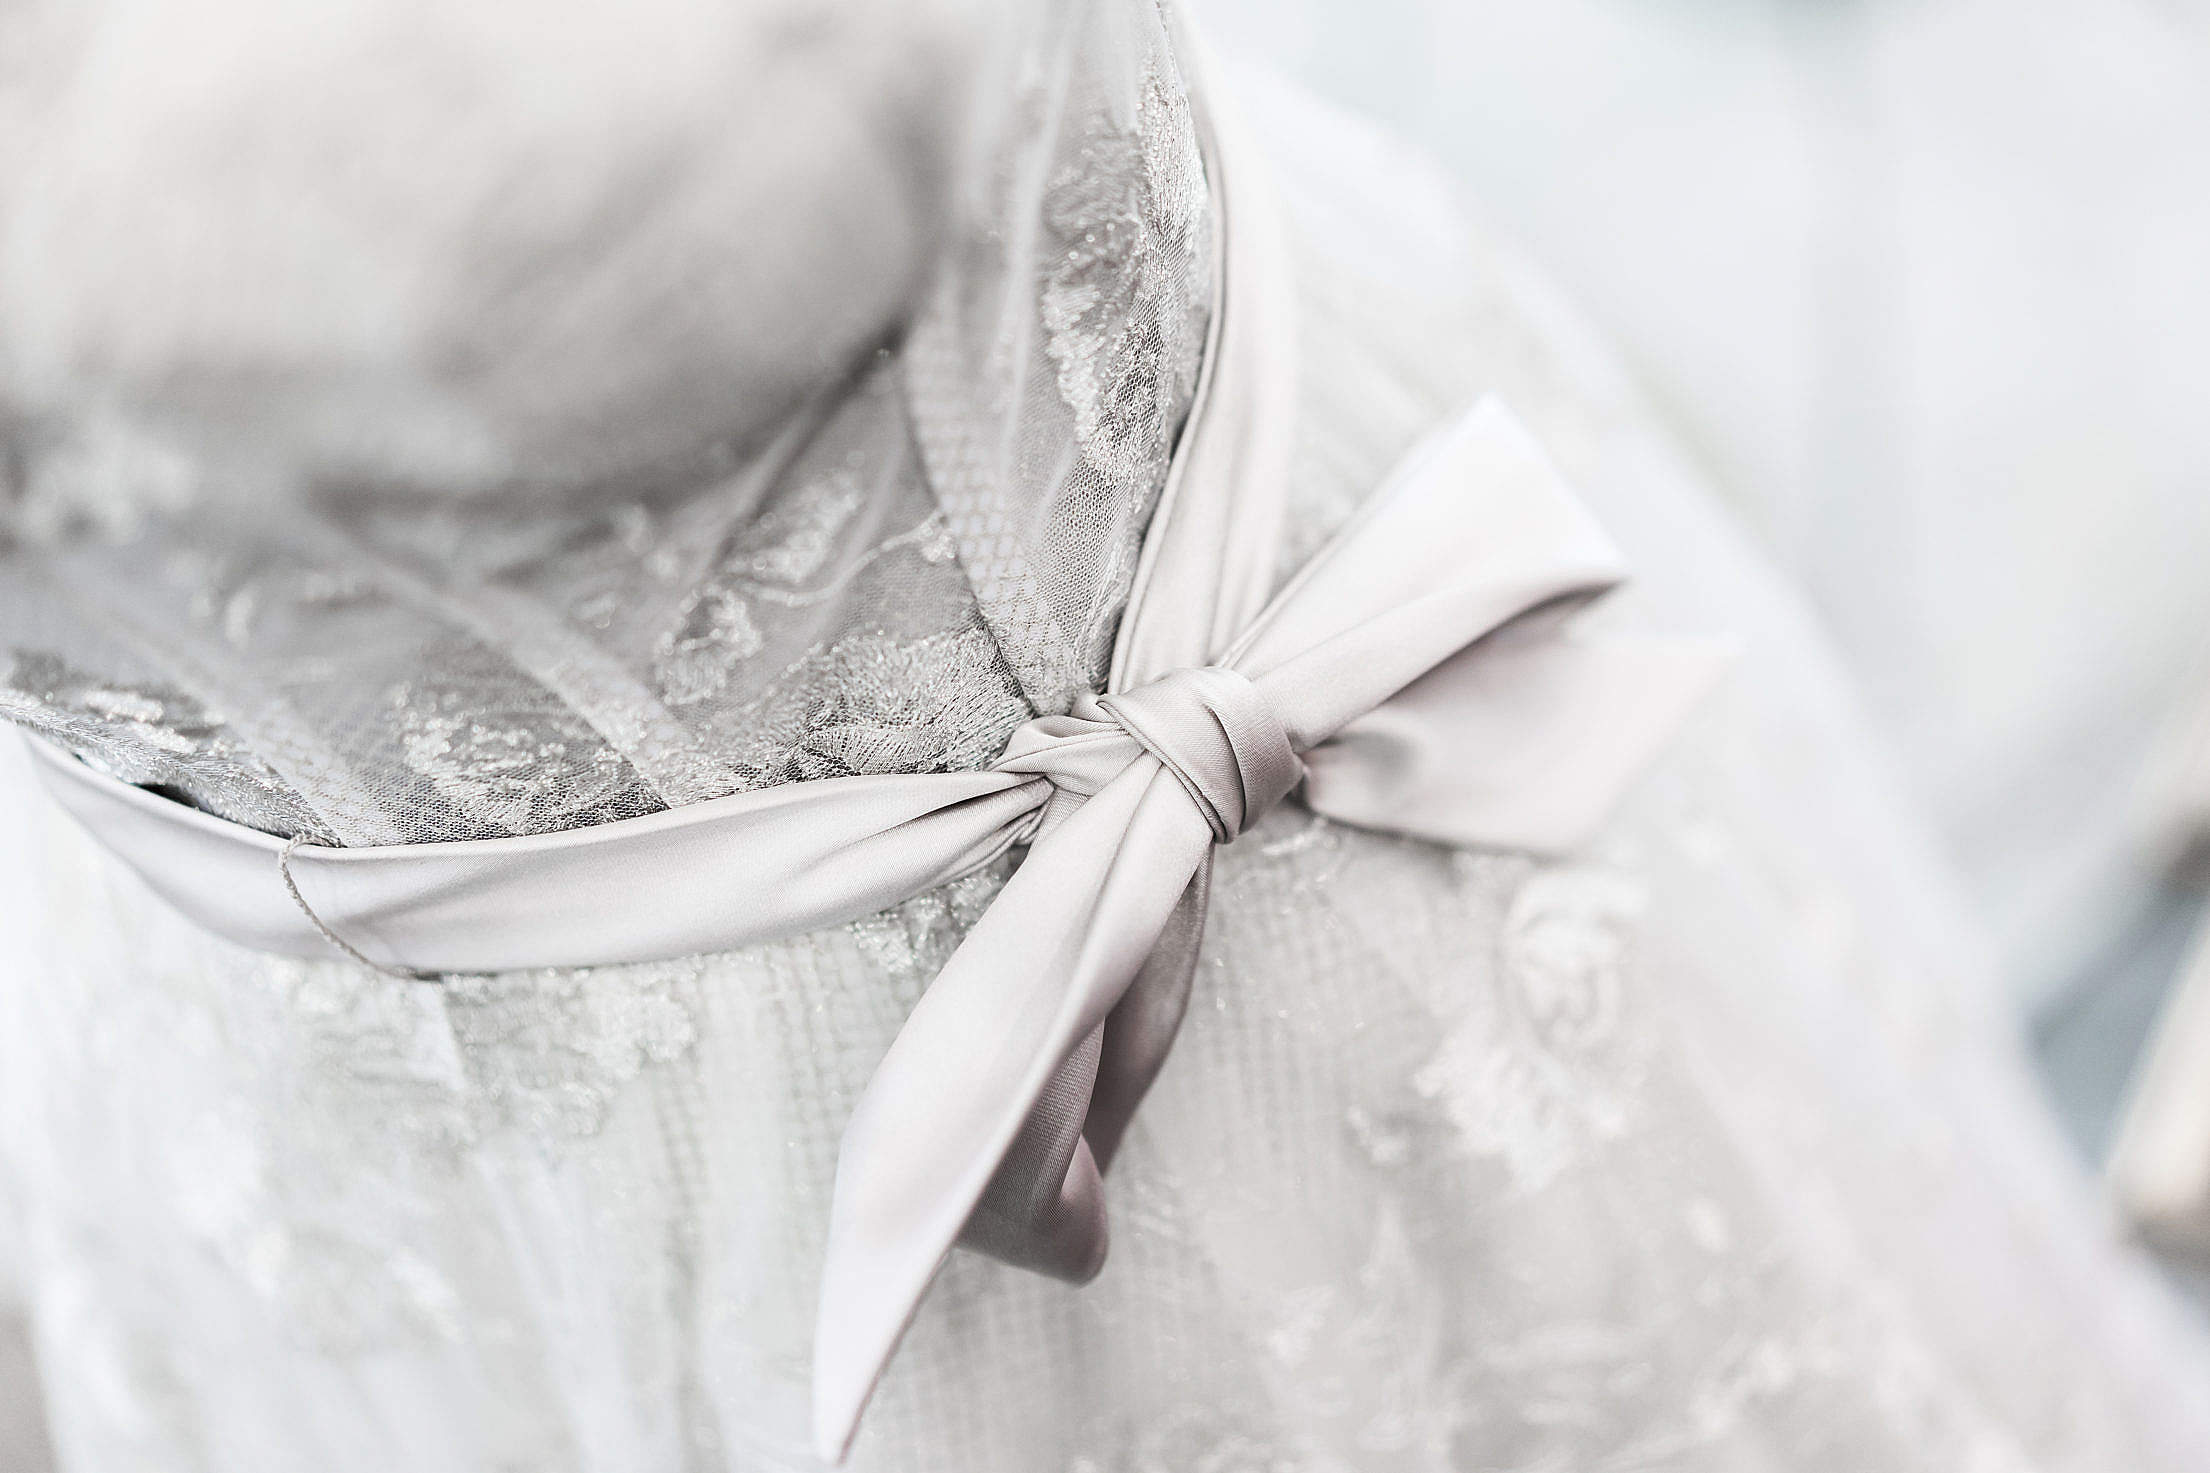 Velvet Bow on Silver Wedding Dress Free Stock Photo